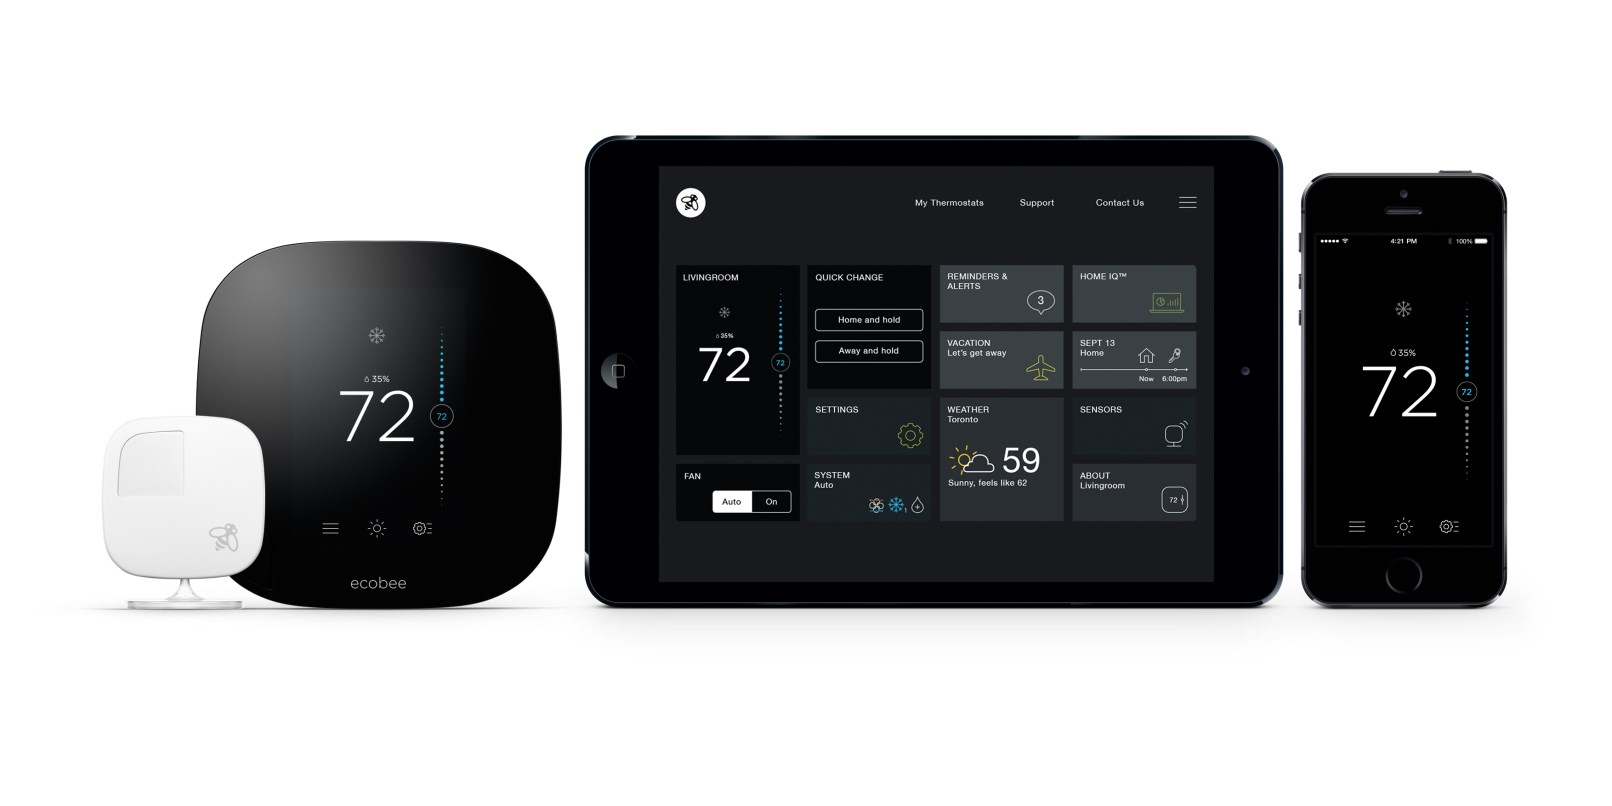 Apple S Now Selling A Thermostat You Can Control With Siri